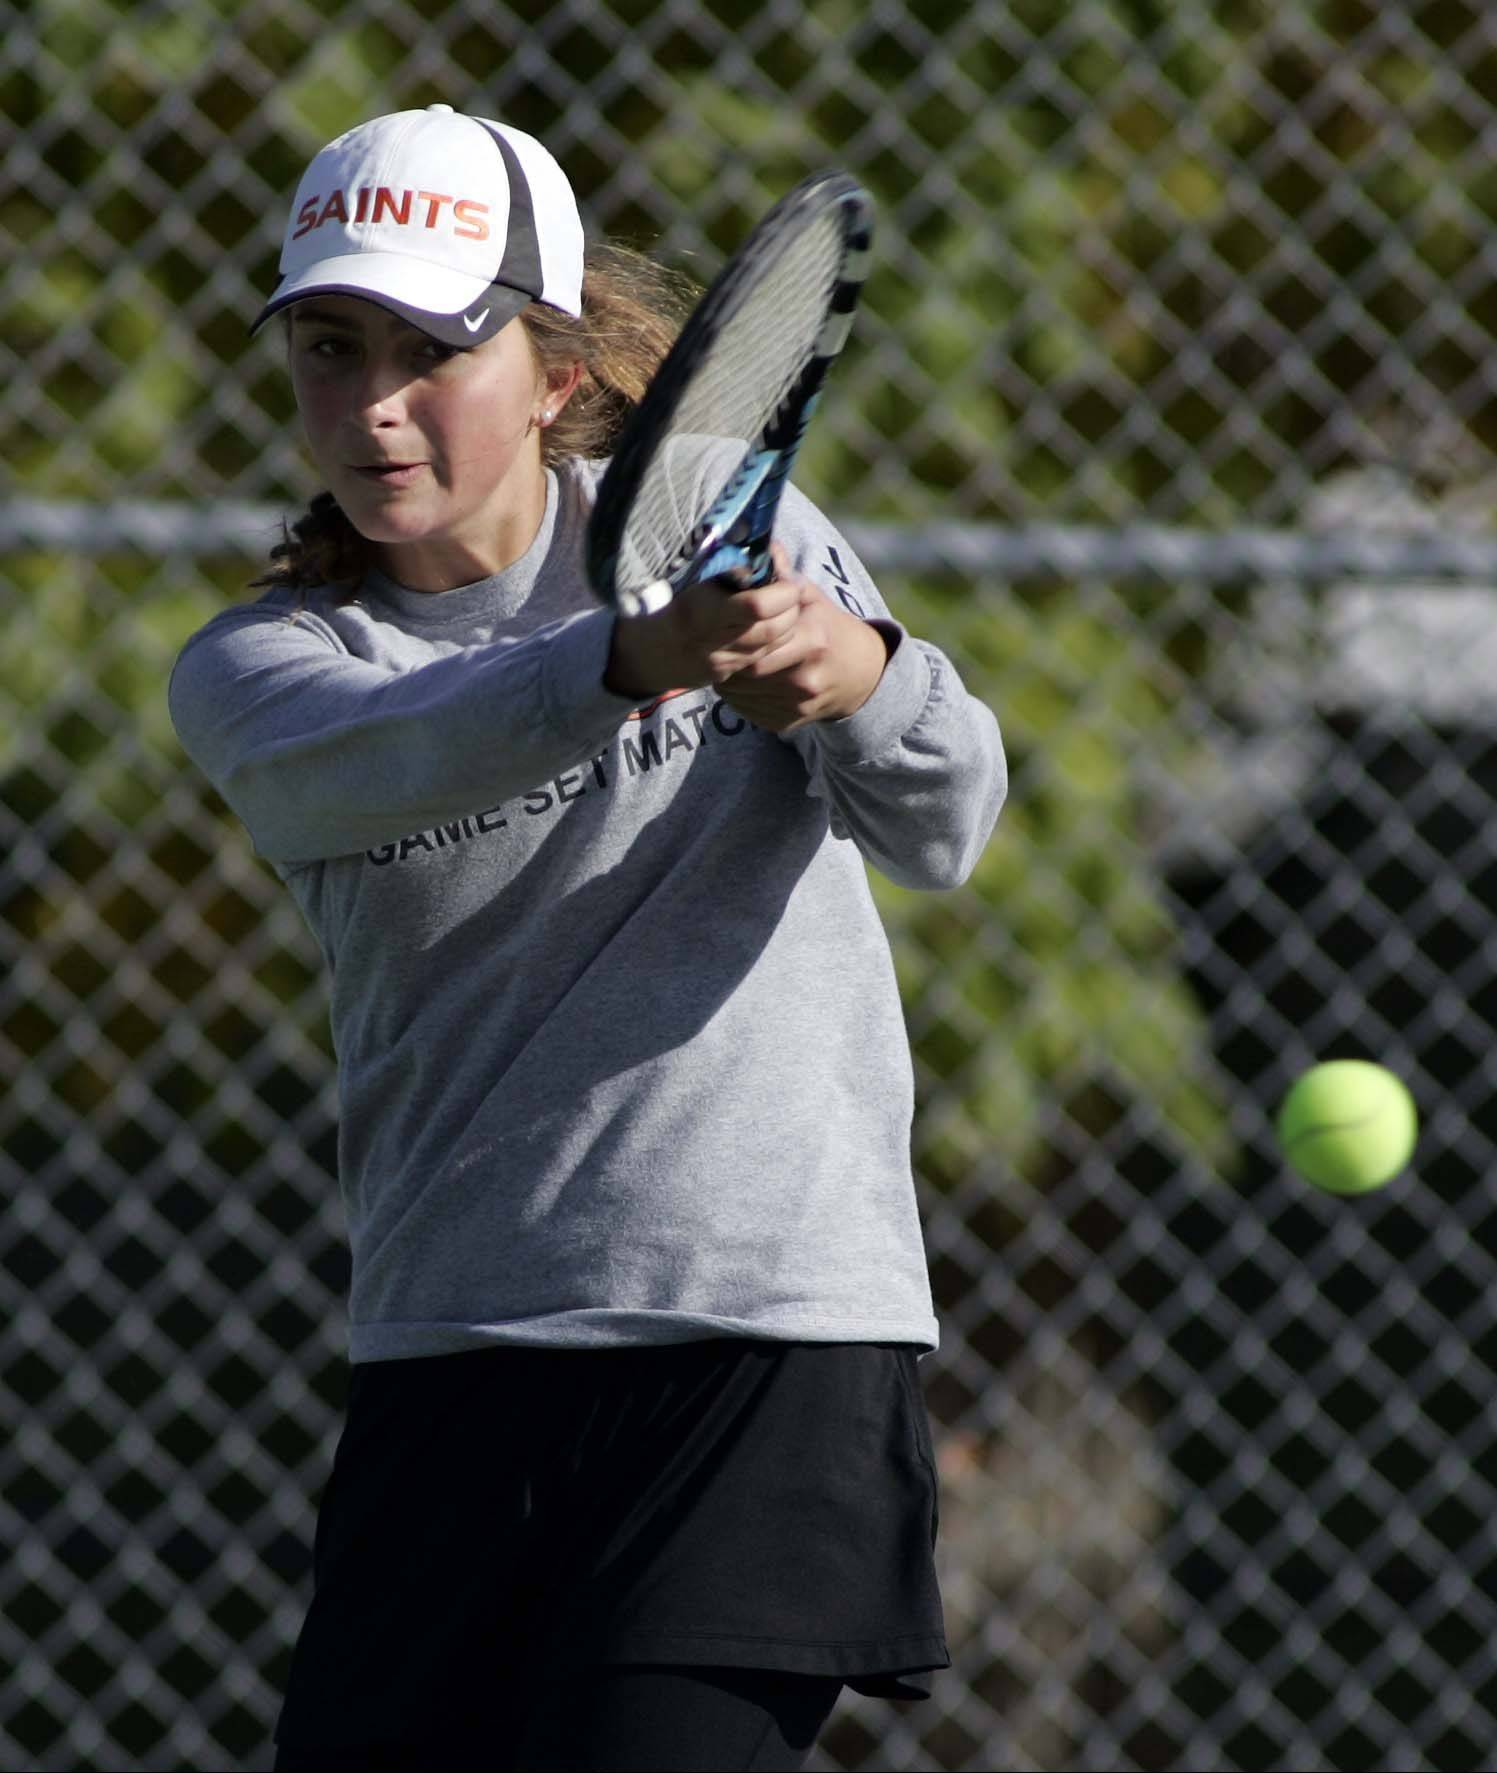 St. Charles East's Haydyn Jones and her partner Kelsie Roberton finished second at No. 1 doubles Saturday at the Upstate Eight Conference River Division tournament.